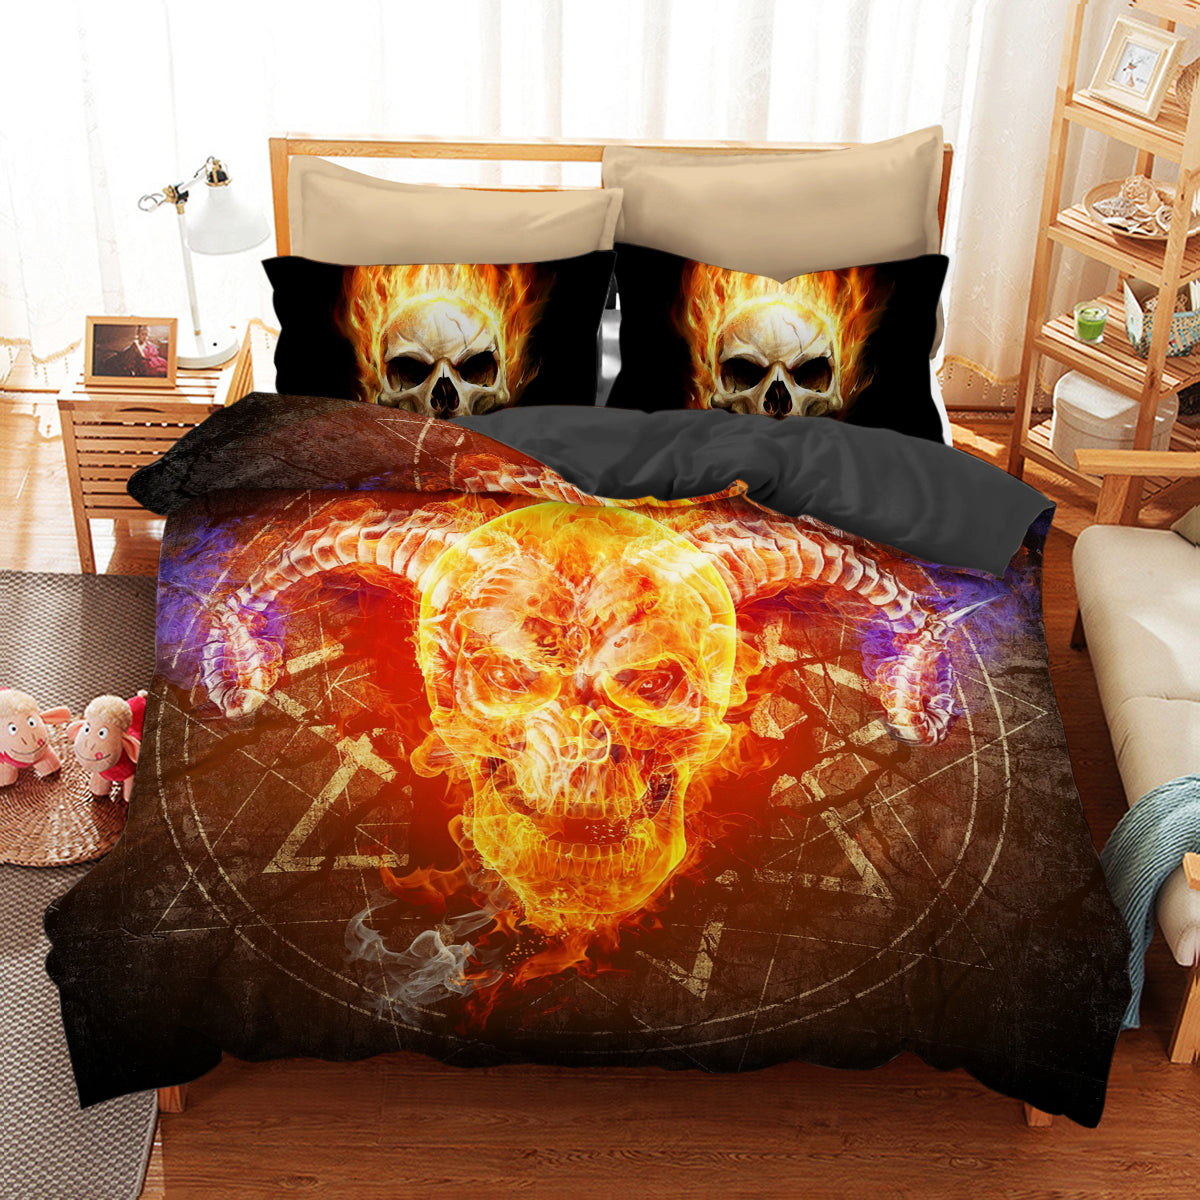 Skull Art Bedding 02 (Duvet Cover and Pillowcases) - designfullprint